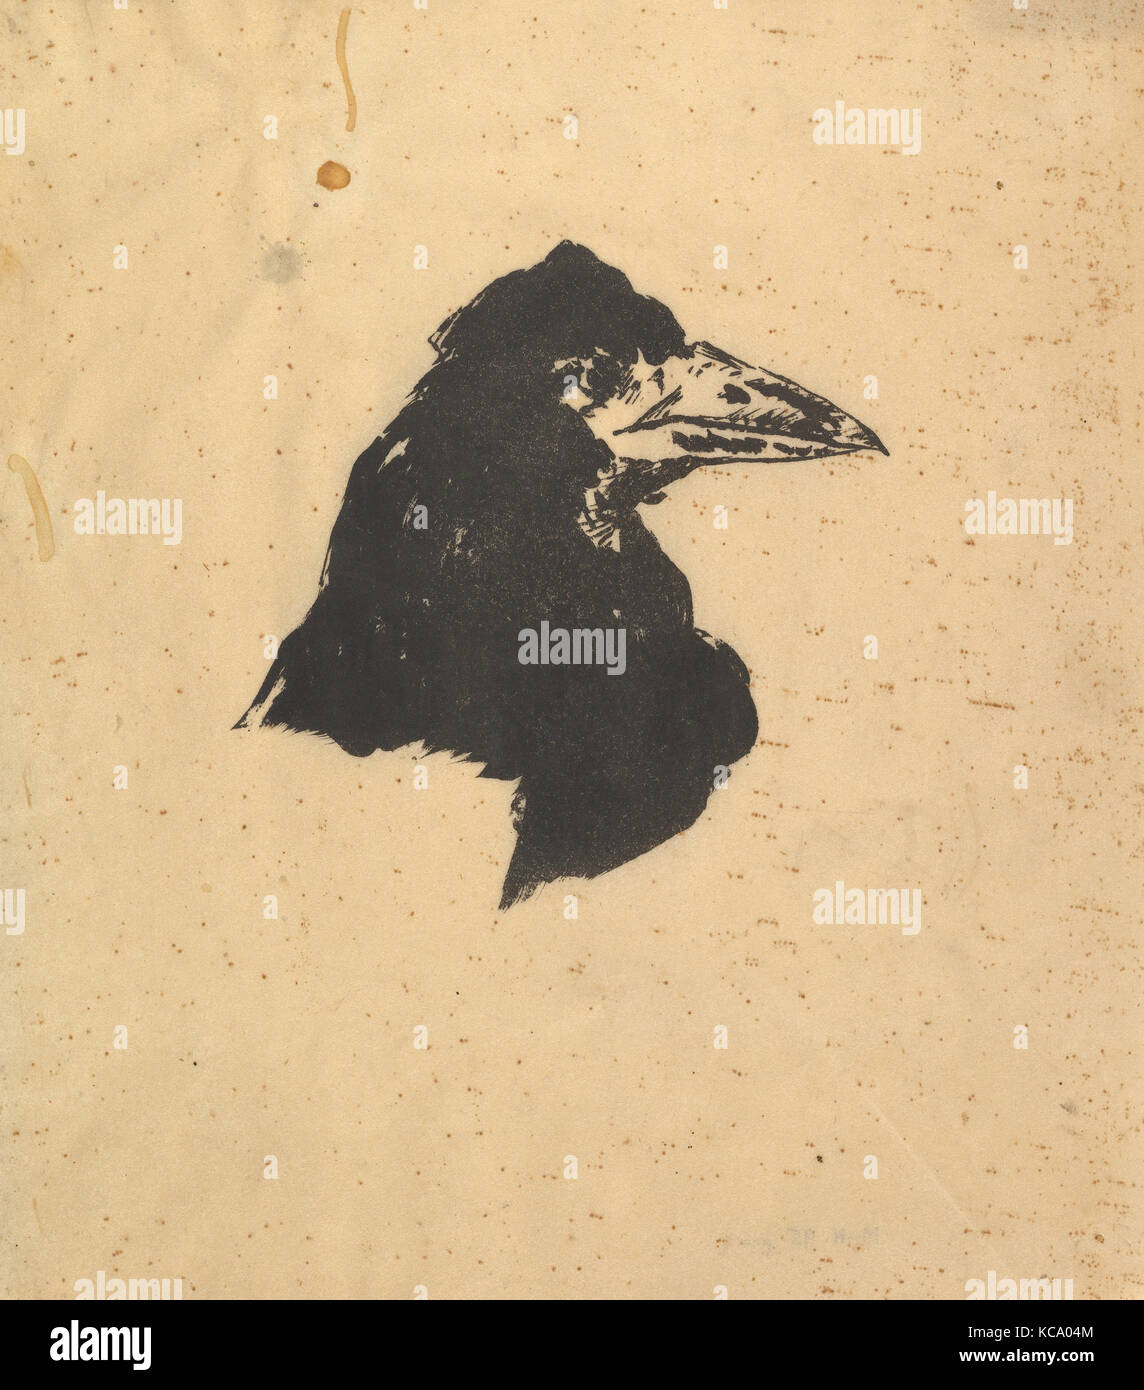 Design for the poster and cover for The Raven by Edgar Allan Poe, Édouard Manet, 1875 - Stock Image